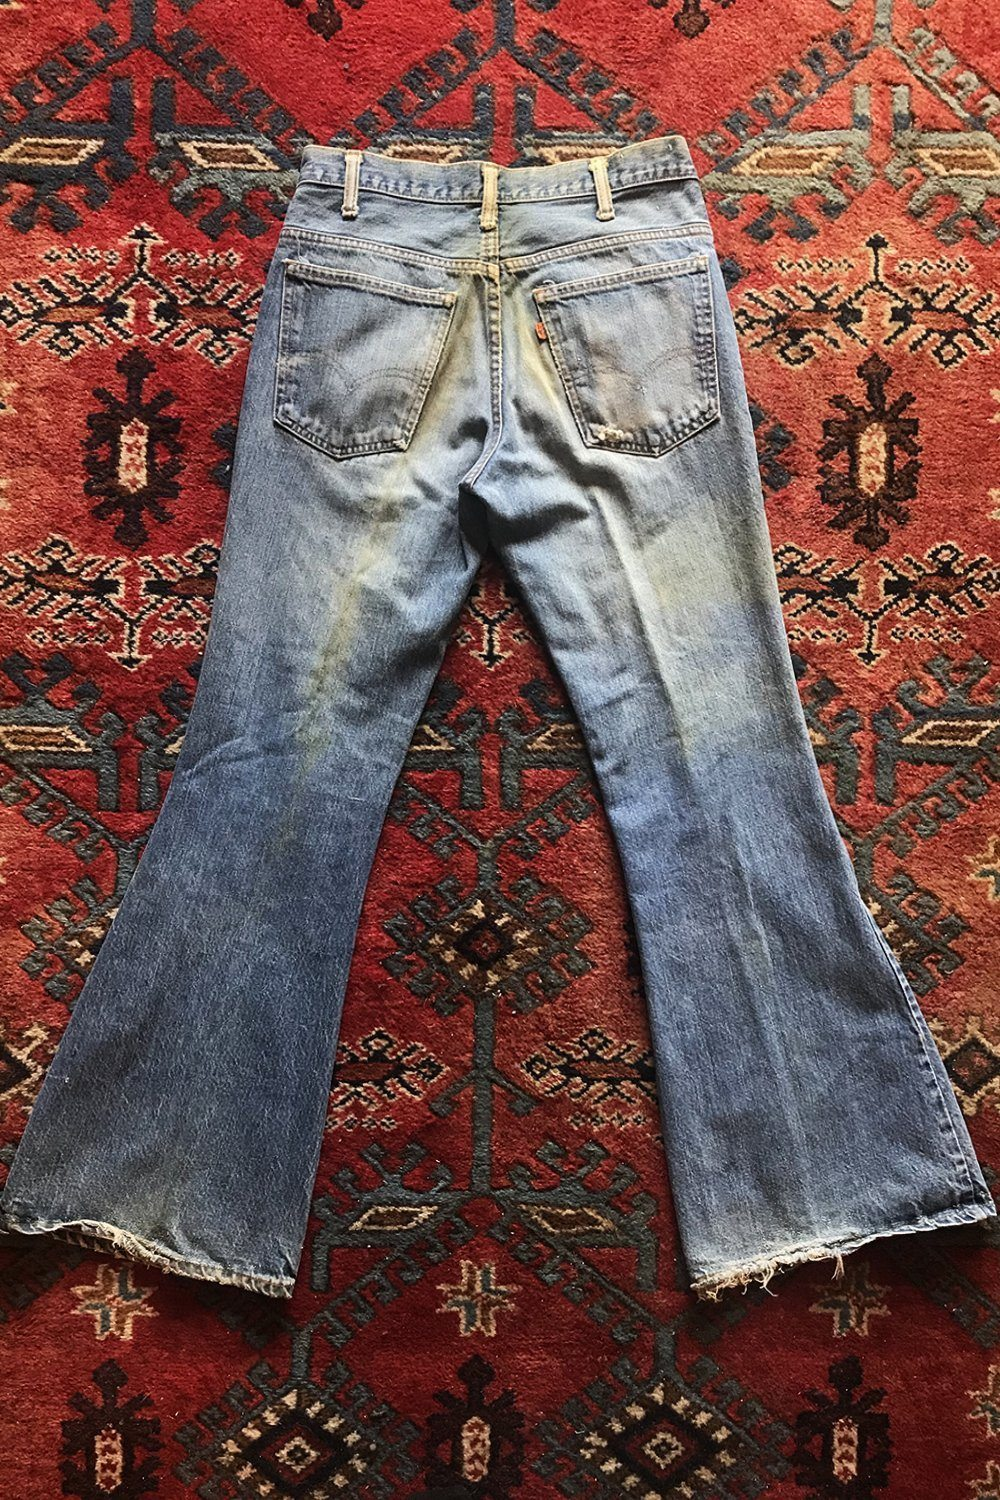 Vintage Levi's Perfectly Worn and Faded Orange Tab Flared Jeans